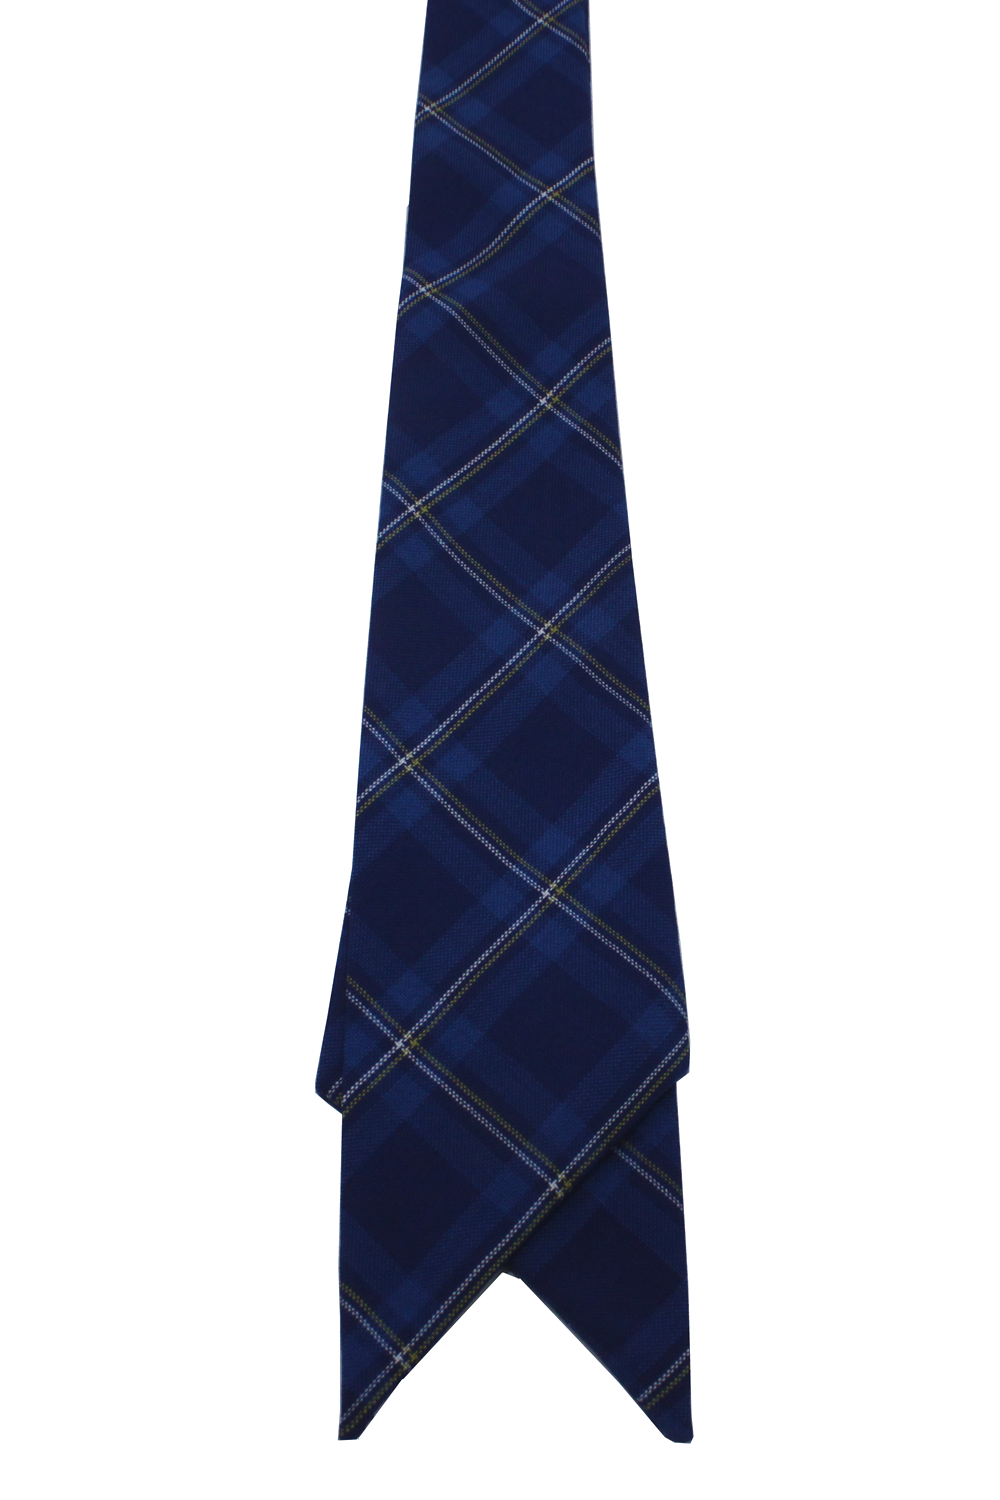 CCC Girls Formal Tie